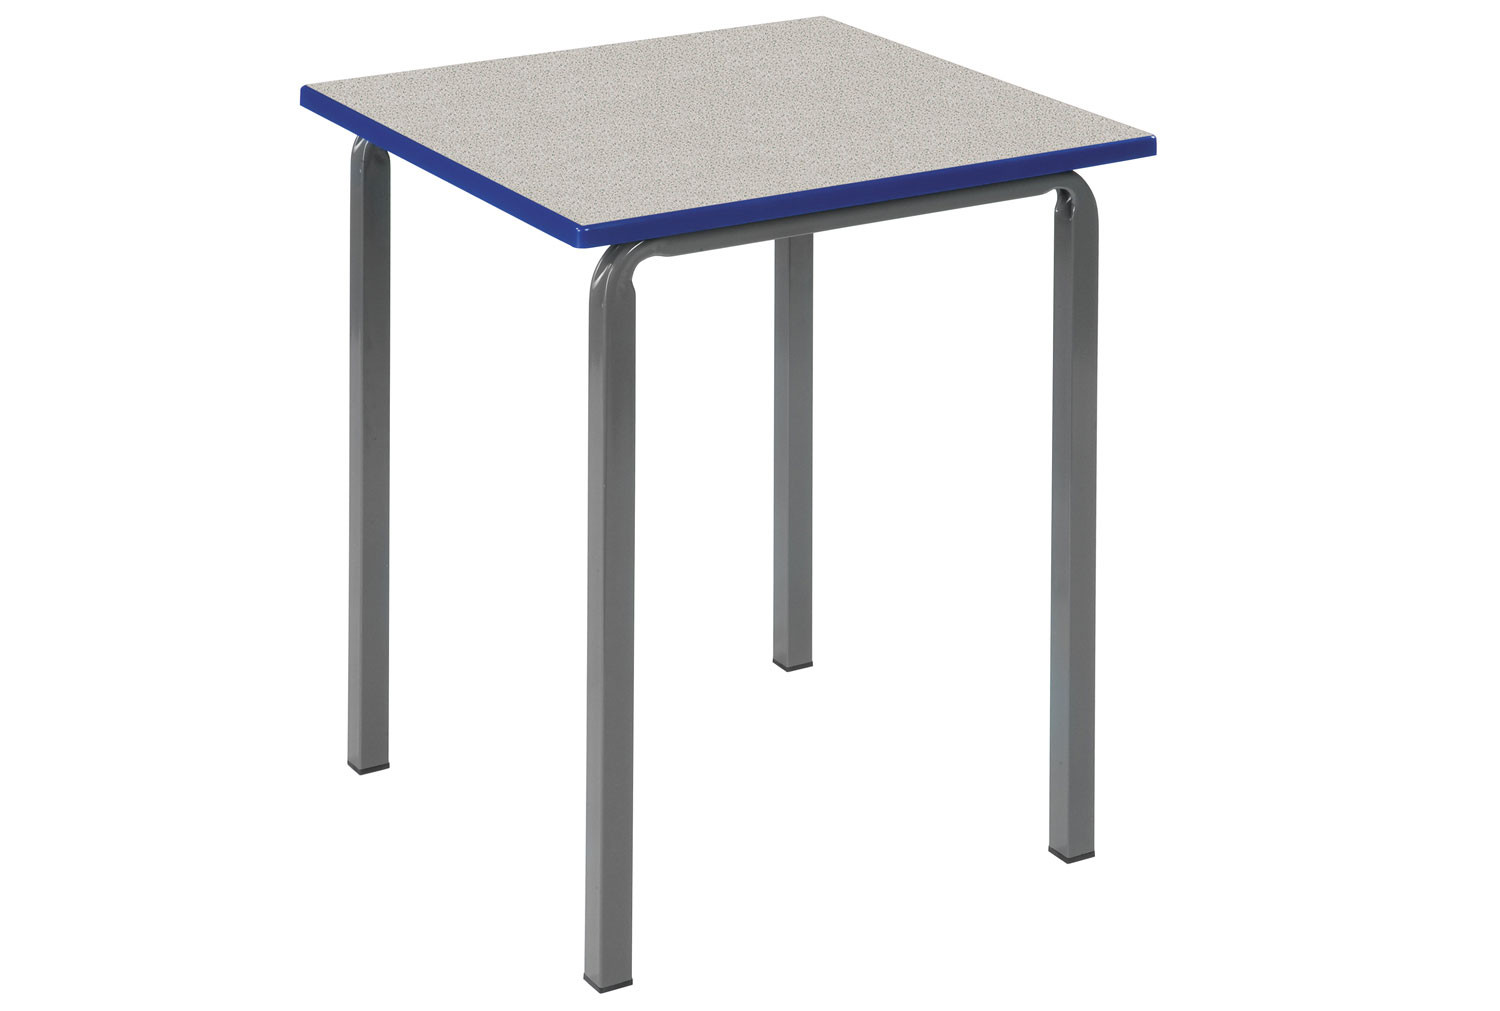 Reliance Square Classroom Tables 3-4 Years